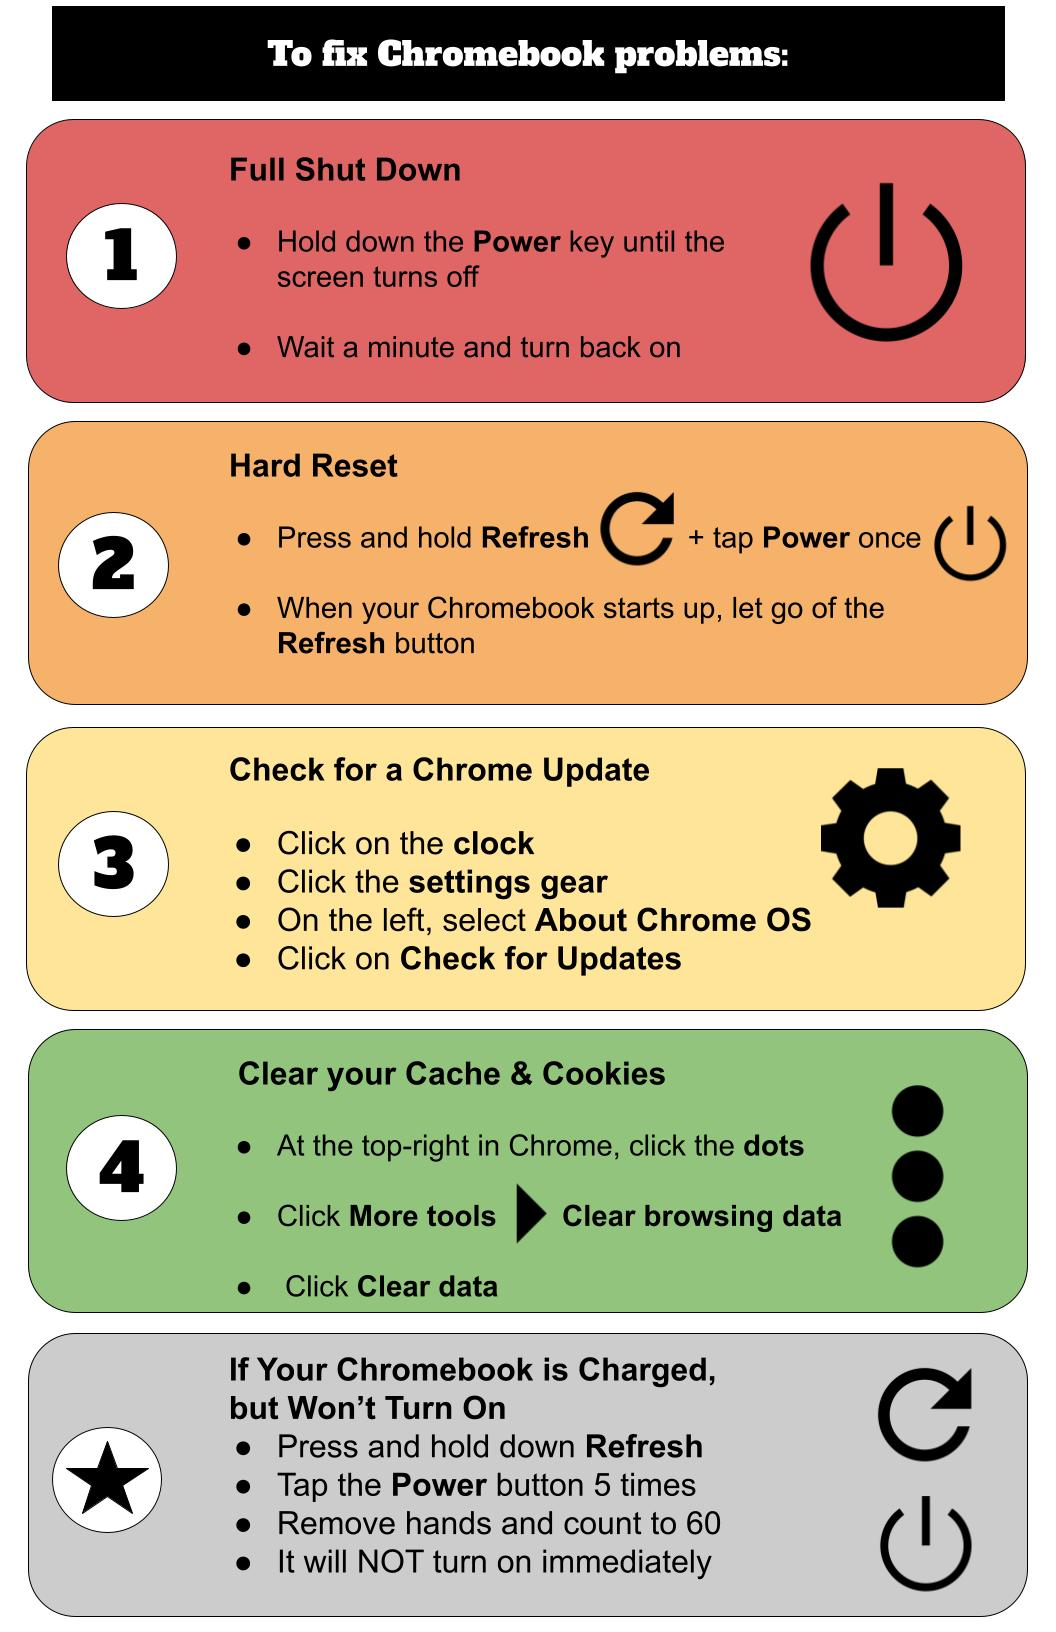 a visual guide for fixing Chromebook problems